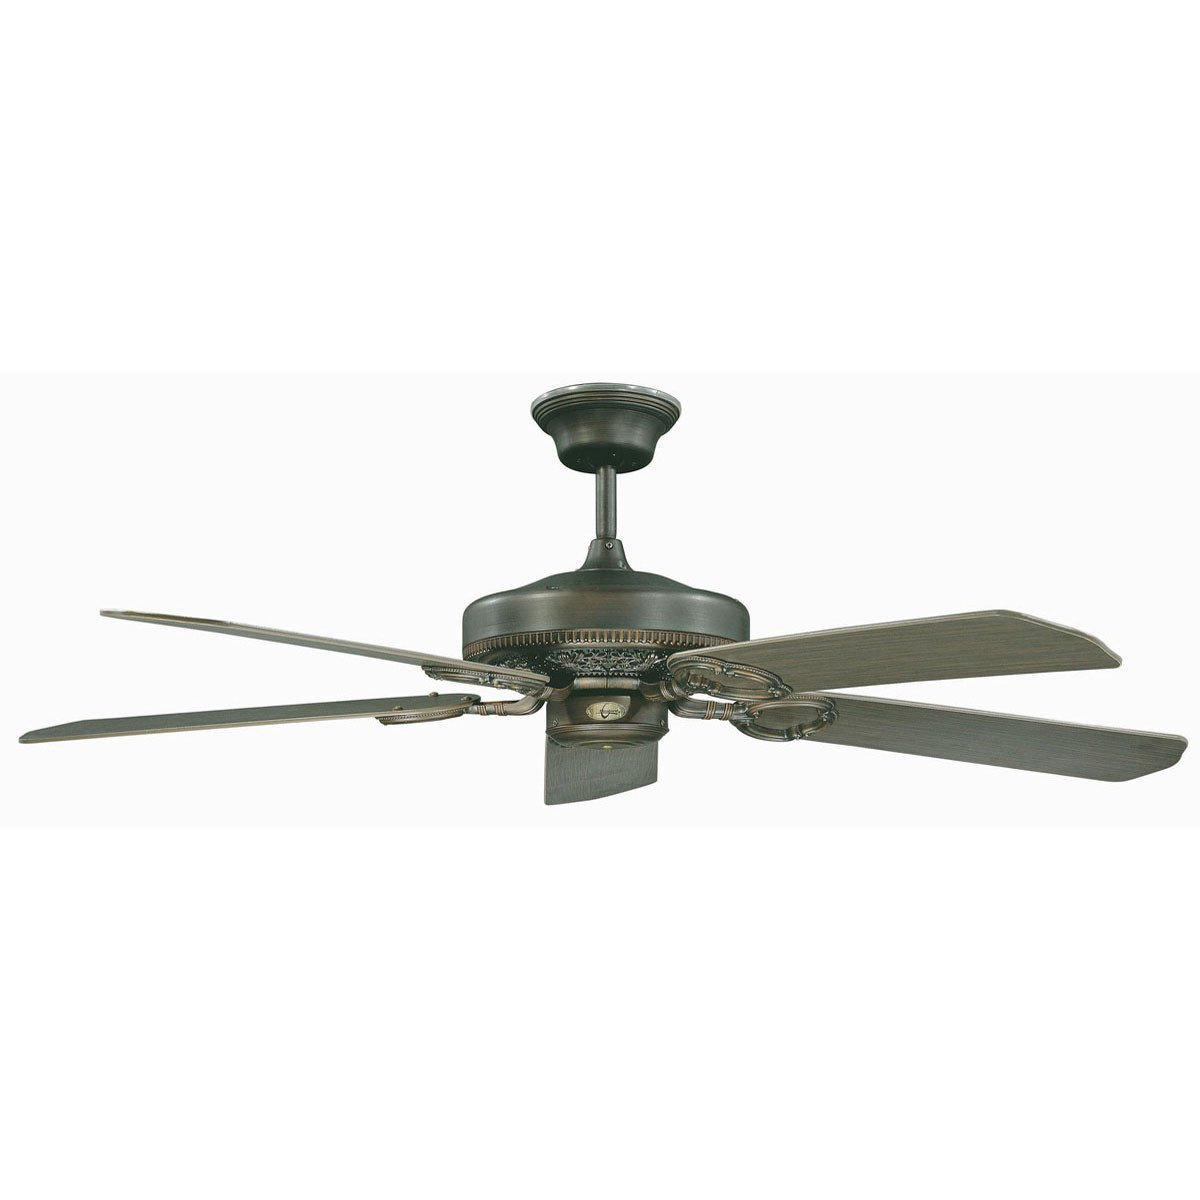 "Concord Fans 52"" French Quarter Traditional Oil Rubbed Bronze Ceiling Fan"